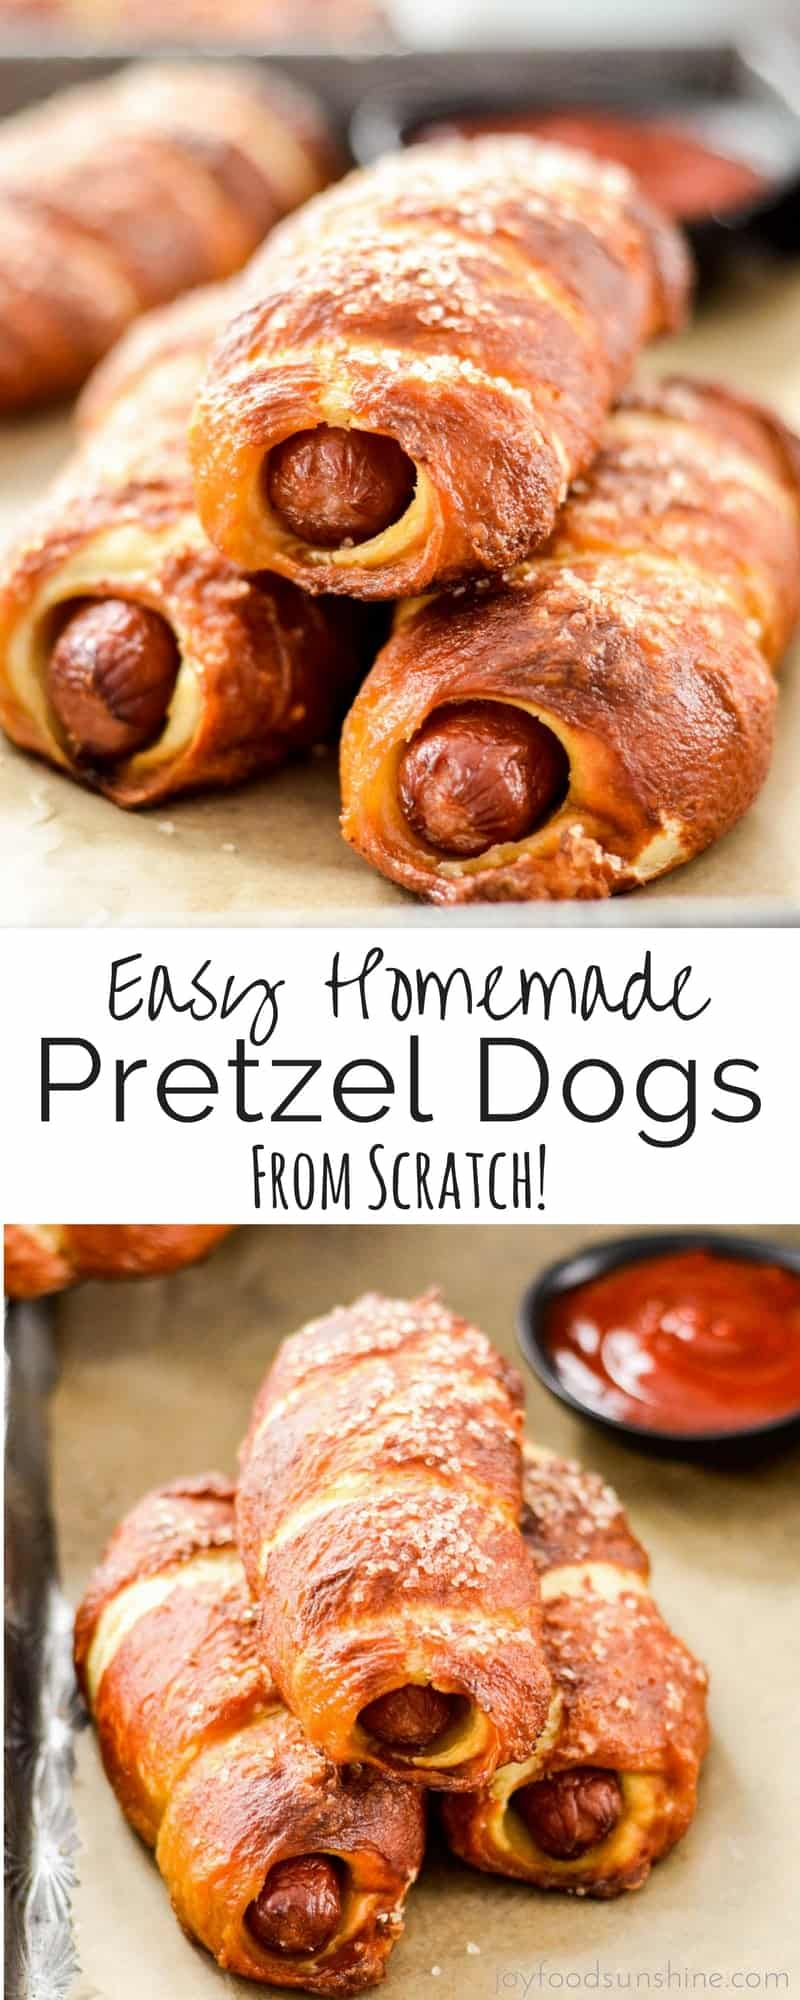 Homemade Pretzel Dogs! A MANtastic recipe for all your sports watching needs! A from-scratch dough is wrapped around high-quality hot dogs making these a much better choice than store bought varieties! Plus they're out of this world delicious and freezer friendly!